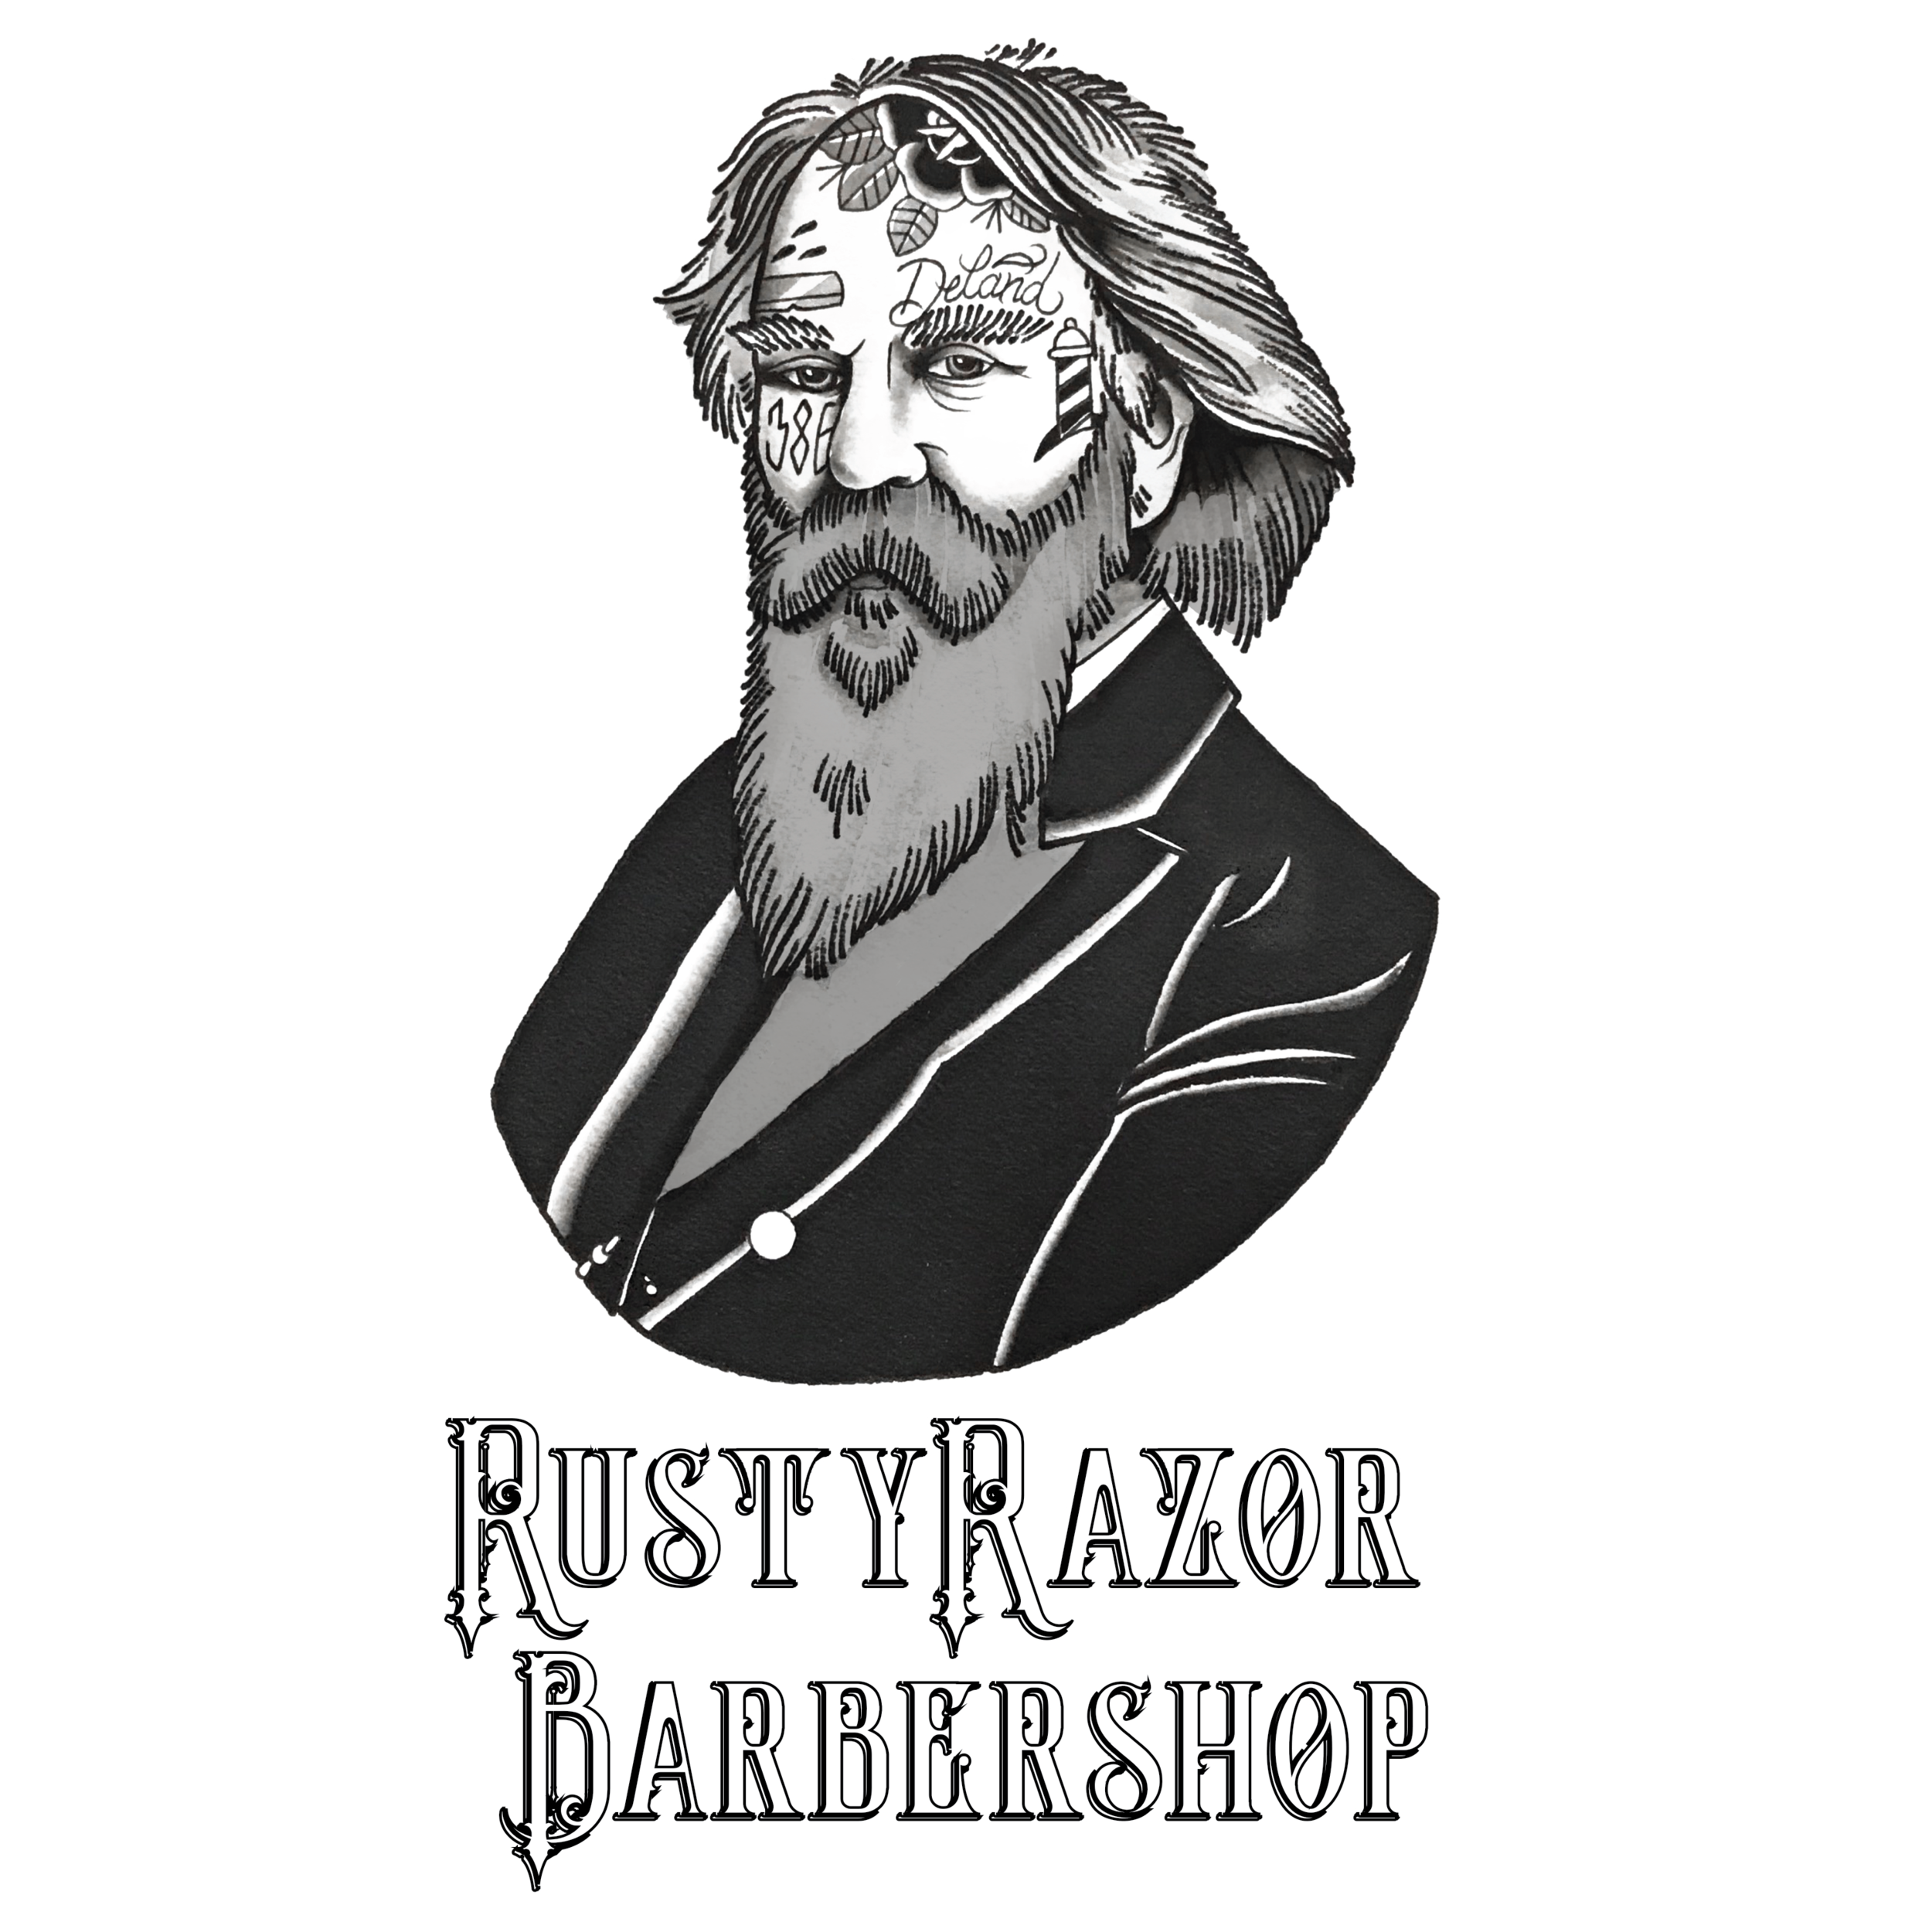 COME IN, YOUR BEST LOOKS AWAITS YOU. - The RustyRazor is the place you never knew you always wanted. Located in the heart of historical downtown Deland, Fl. lies this barbershop. The RustyRazor maintains a very traditional aesthetic while flawlessly combining a modern twist in skill in this age old craft.This is not a cookie cutter, one size haircut fits all chain. This shop caters to the men who have been seeking a quality traditional barbershop experience. From tailored haircuts, down to a traditional hot straight razor shave, this is your one stop shop.From the shop that truly needs no introduction, ask anyone in town and they'll tell you, the RustyRazor is the real deal. Don't waste another minute, book your appointment now and come see what has the whole town buzzin'!Stay handsome Deland.